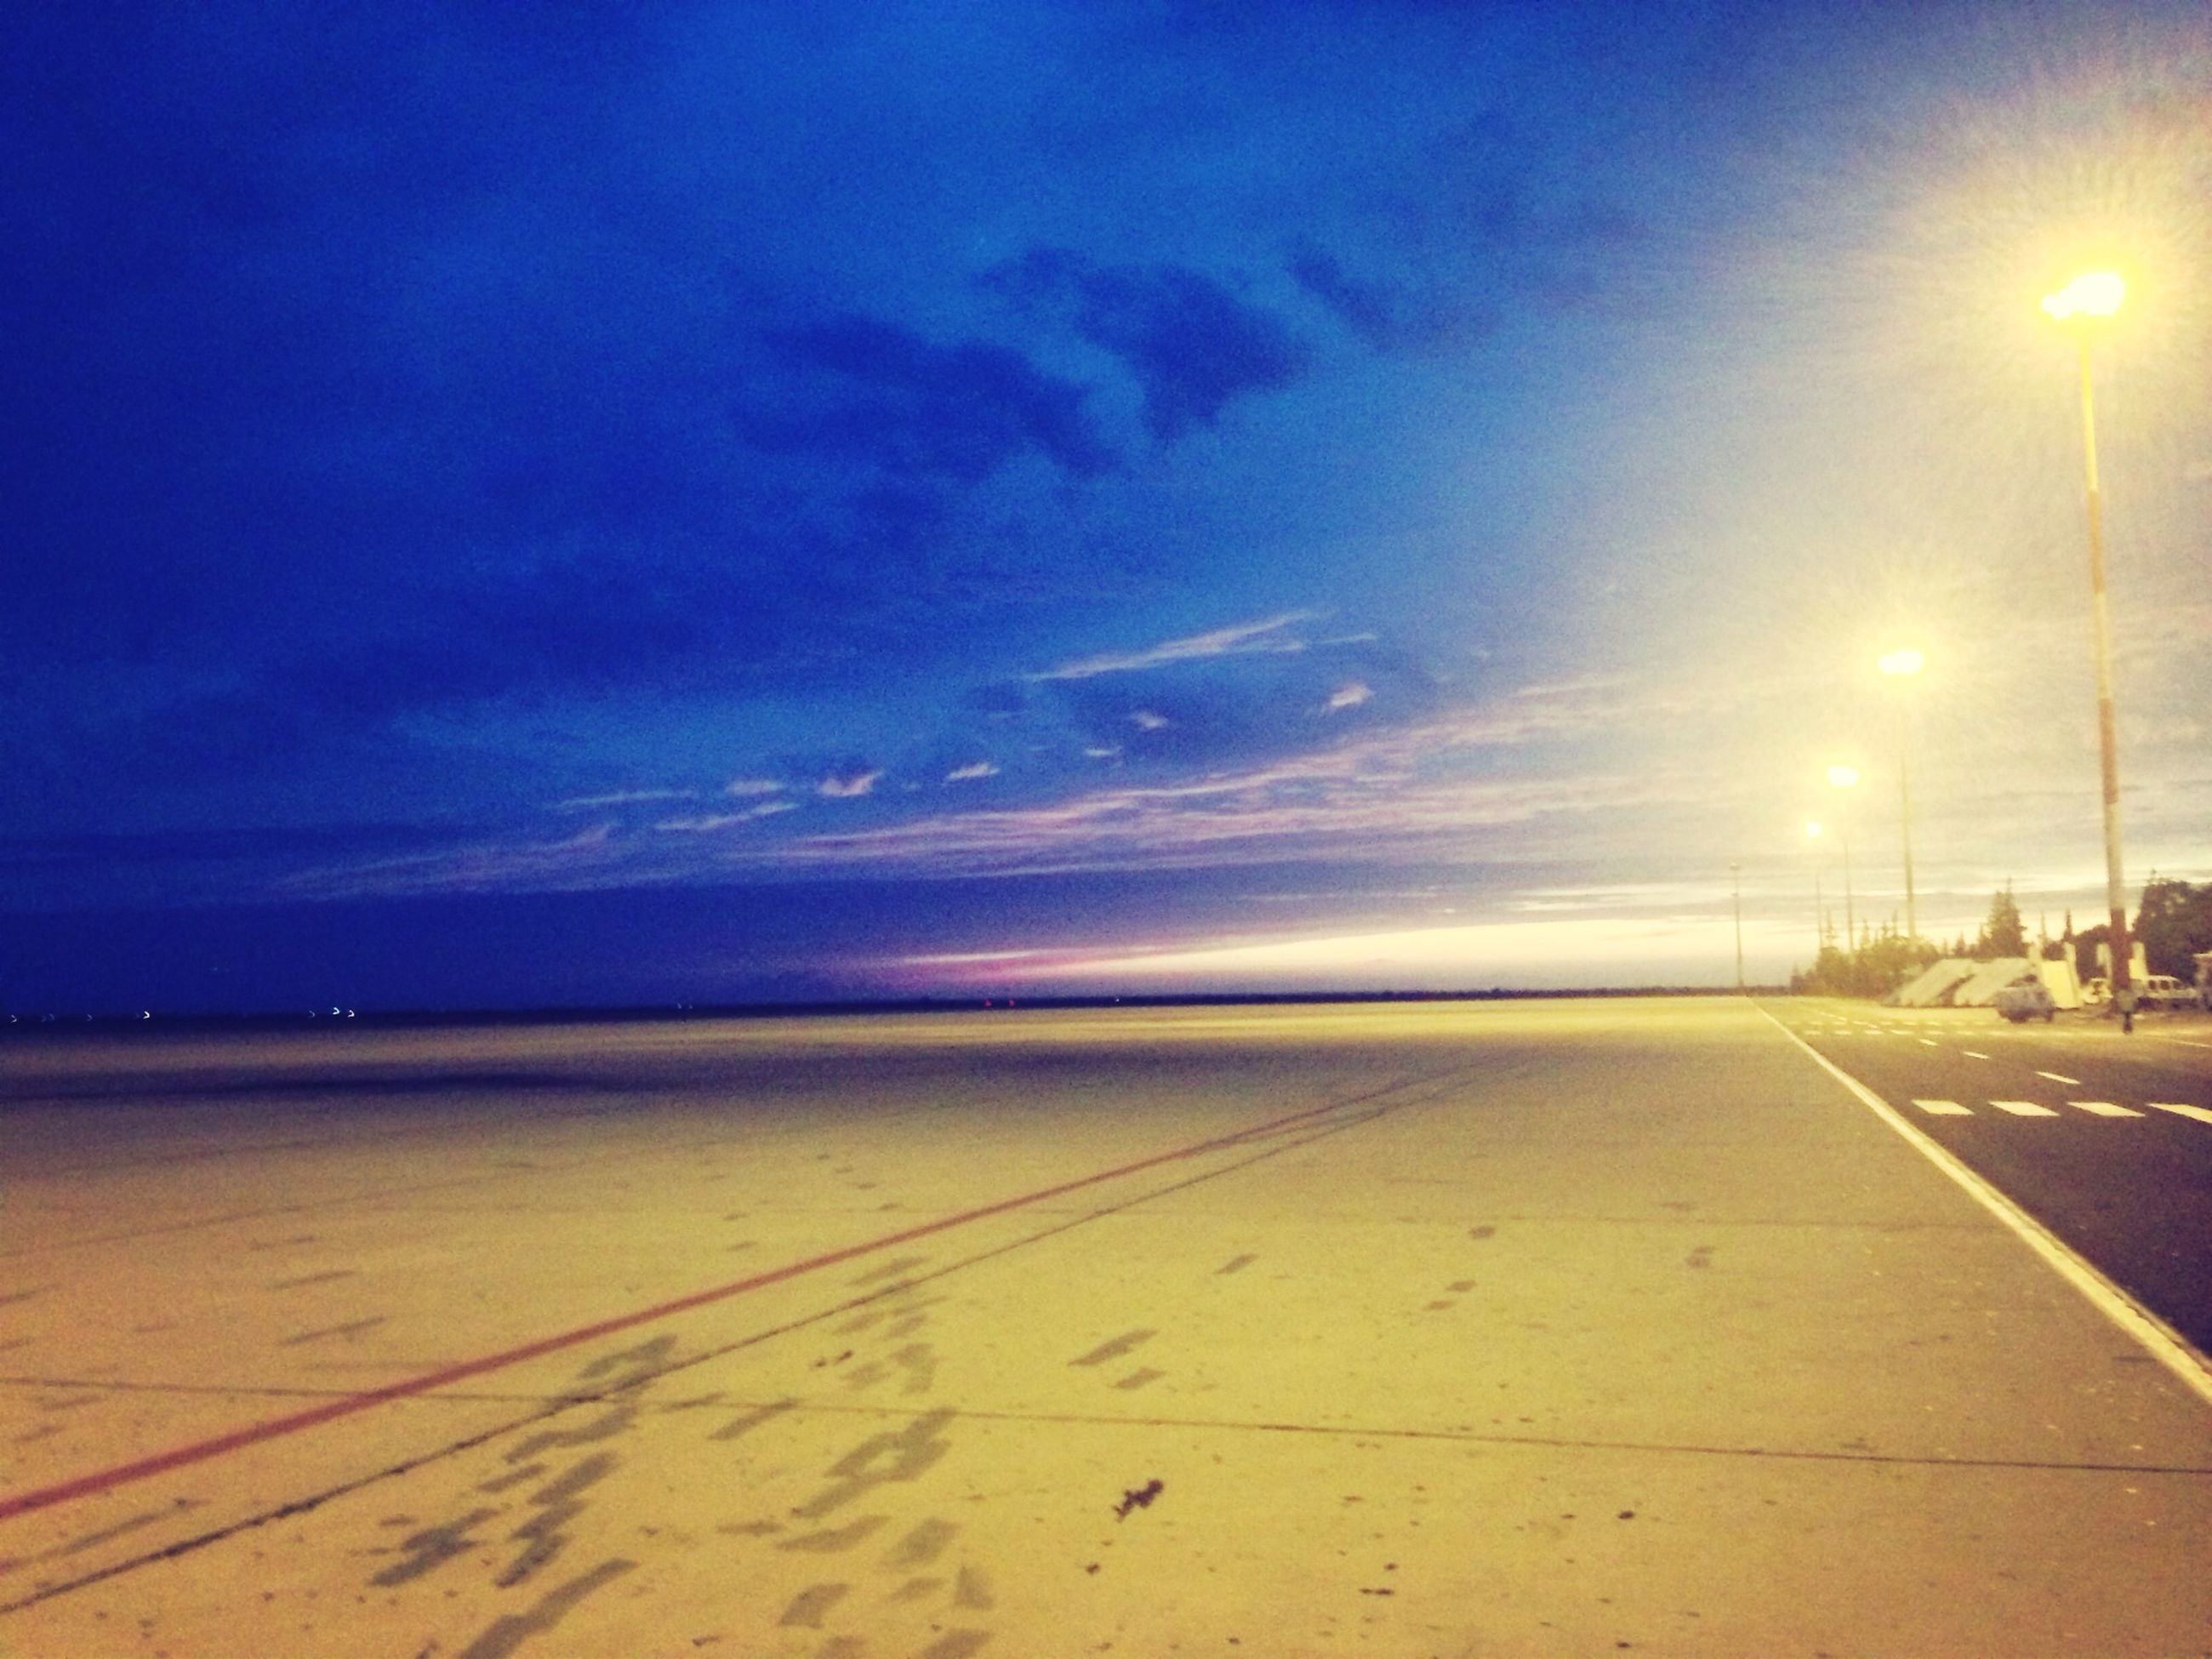 sea, beach, horizon over water, sky, water, tranquil scene, tranquility, scenics, sand, shore, beauty in nature, the way forward, nature, cloud - sky, blue, idyllic, street light, sunset, incidental people, cloud